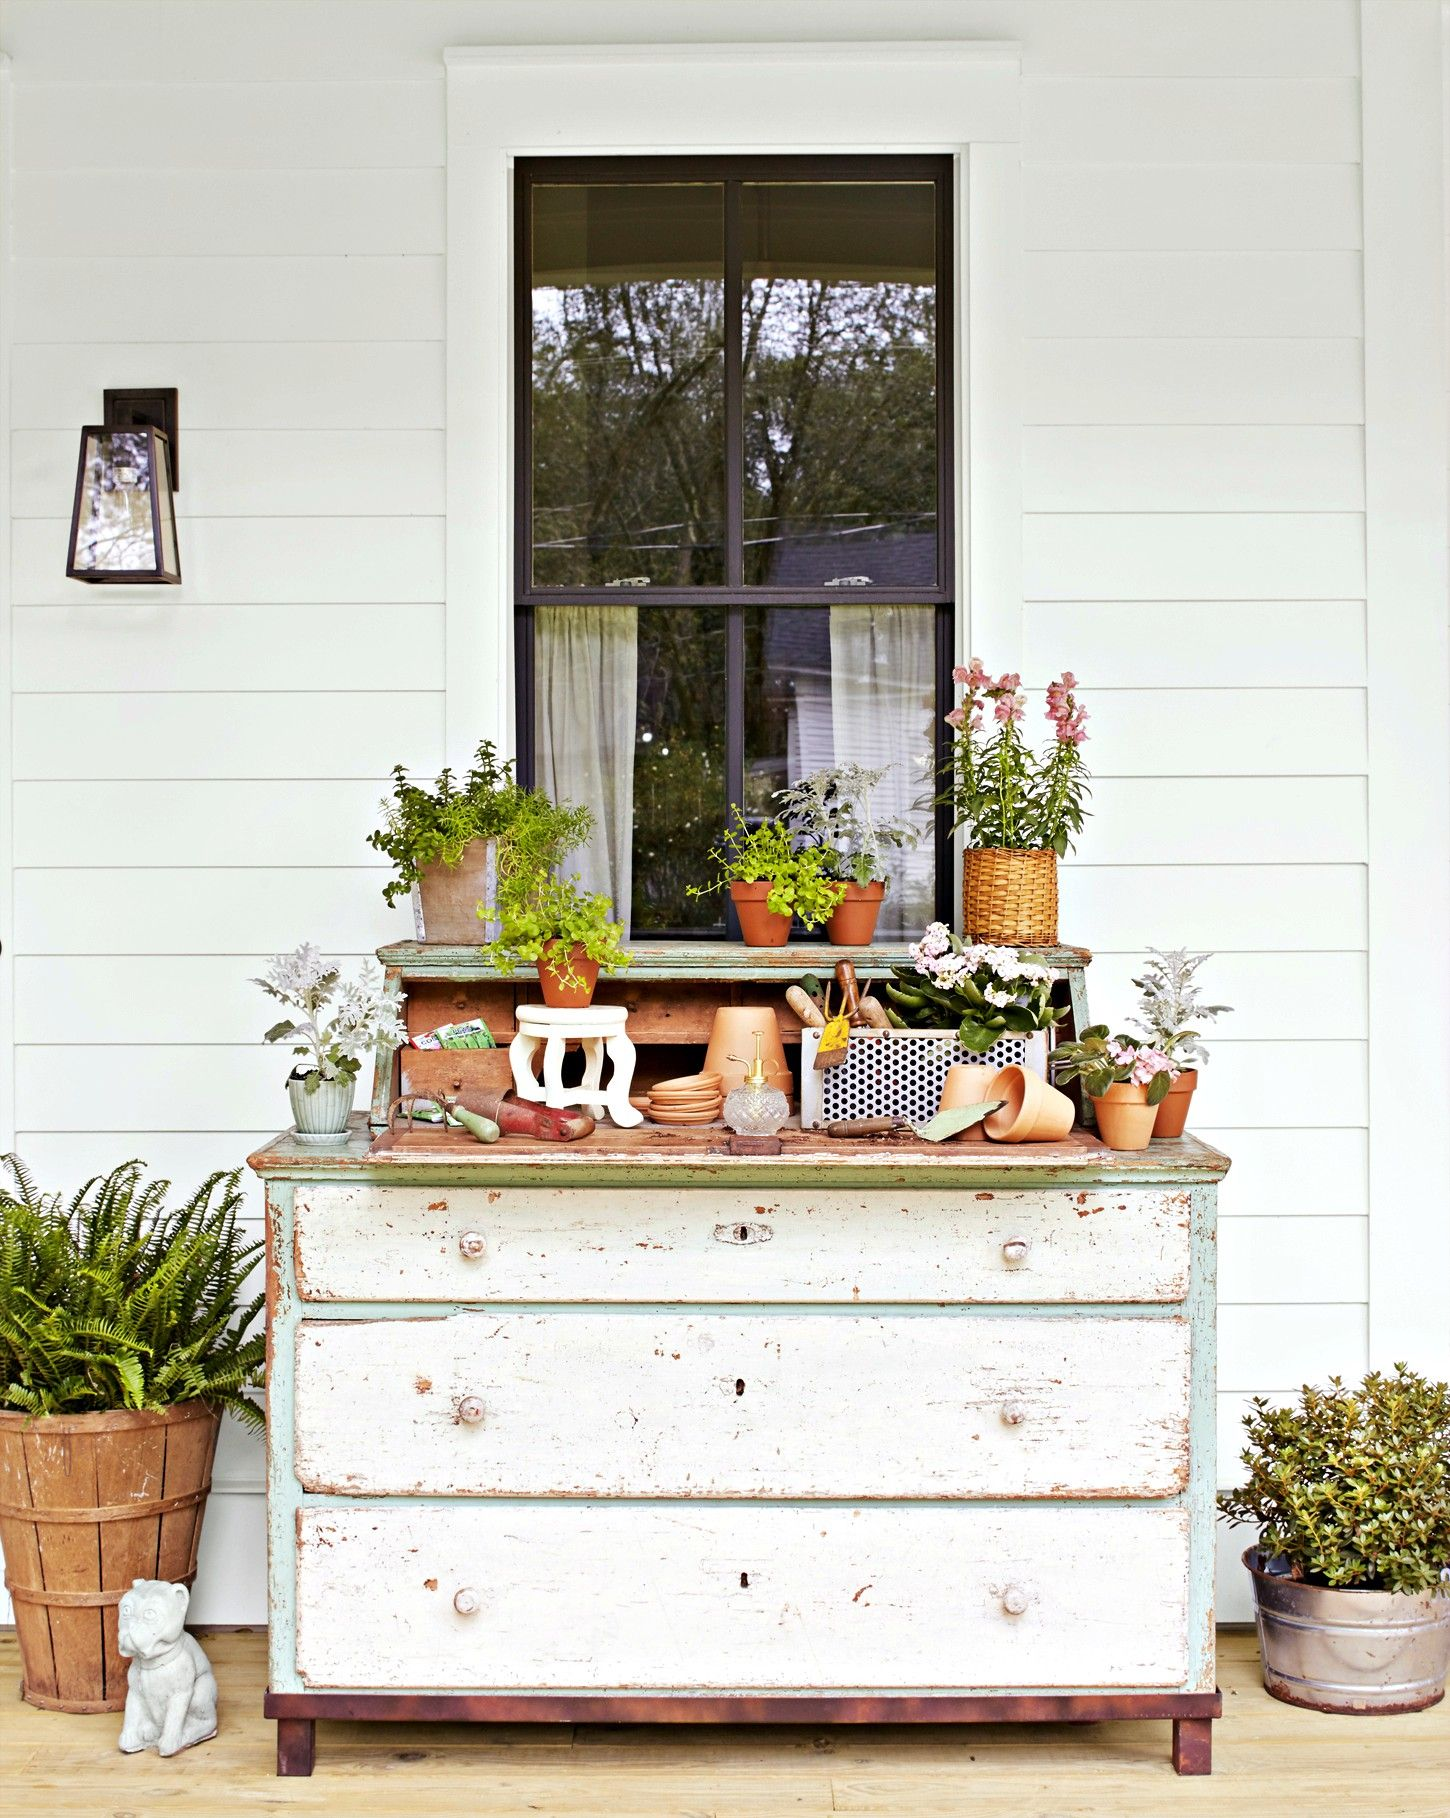 Dresser on the porch used for a potting bench and tool storage